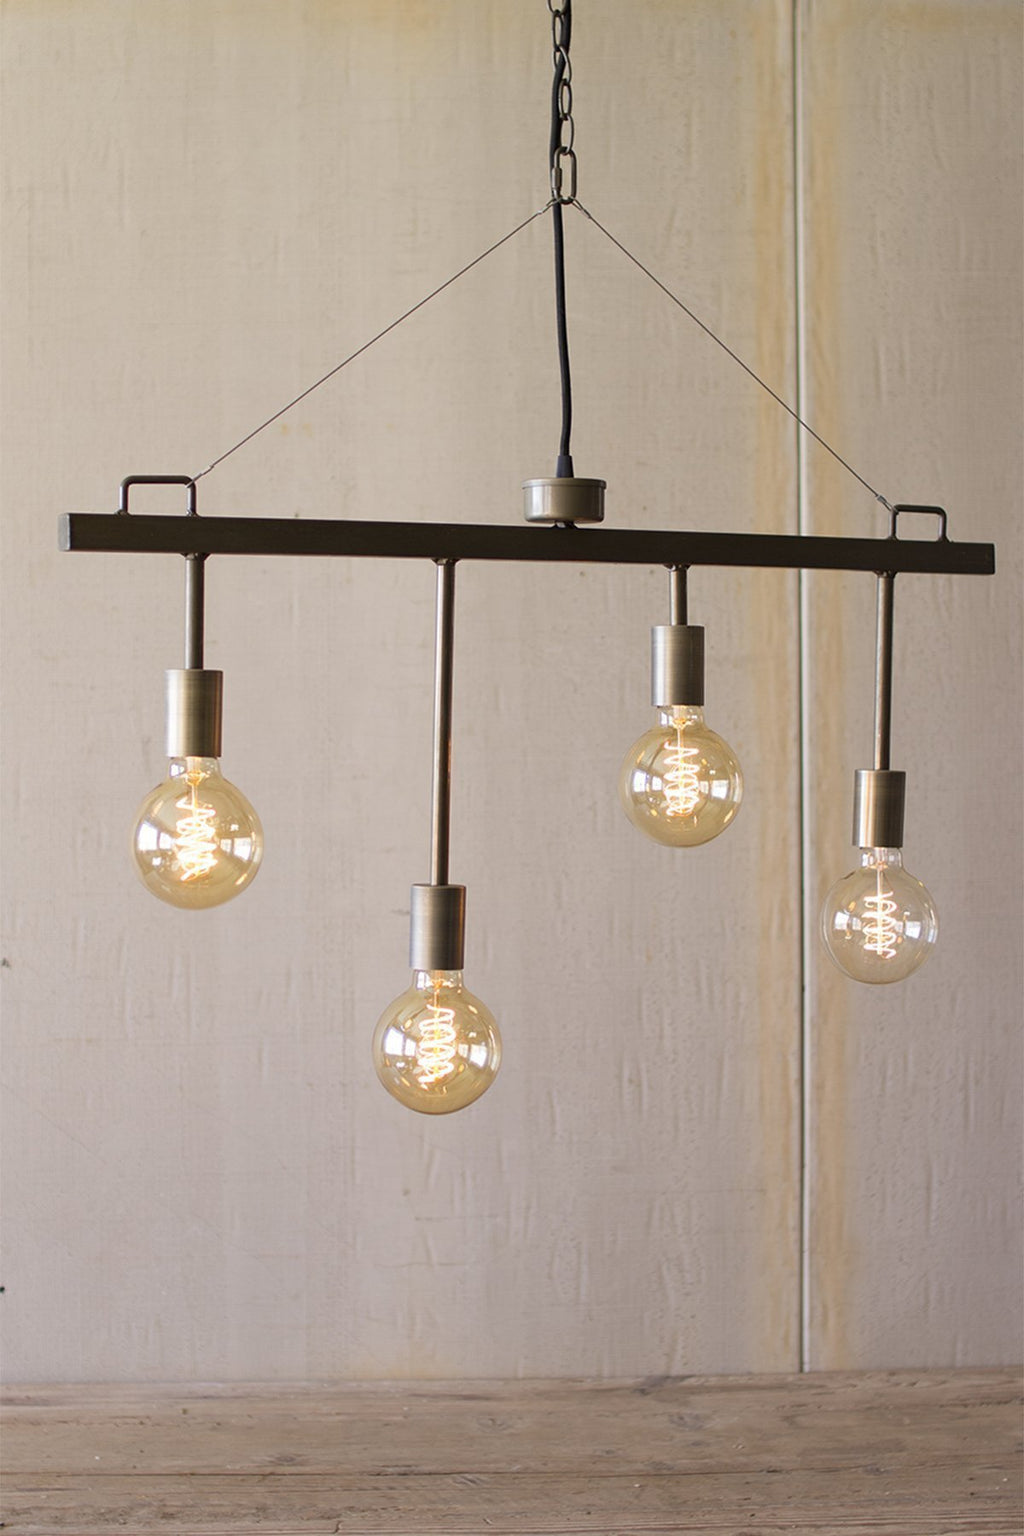 Urban Farmhouse Designs Raw Metal and Brass Pendant